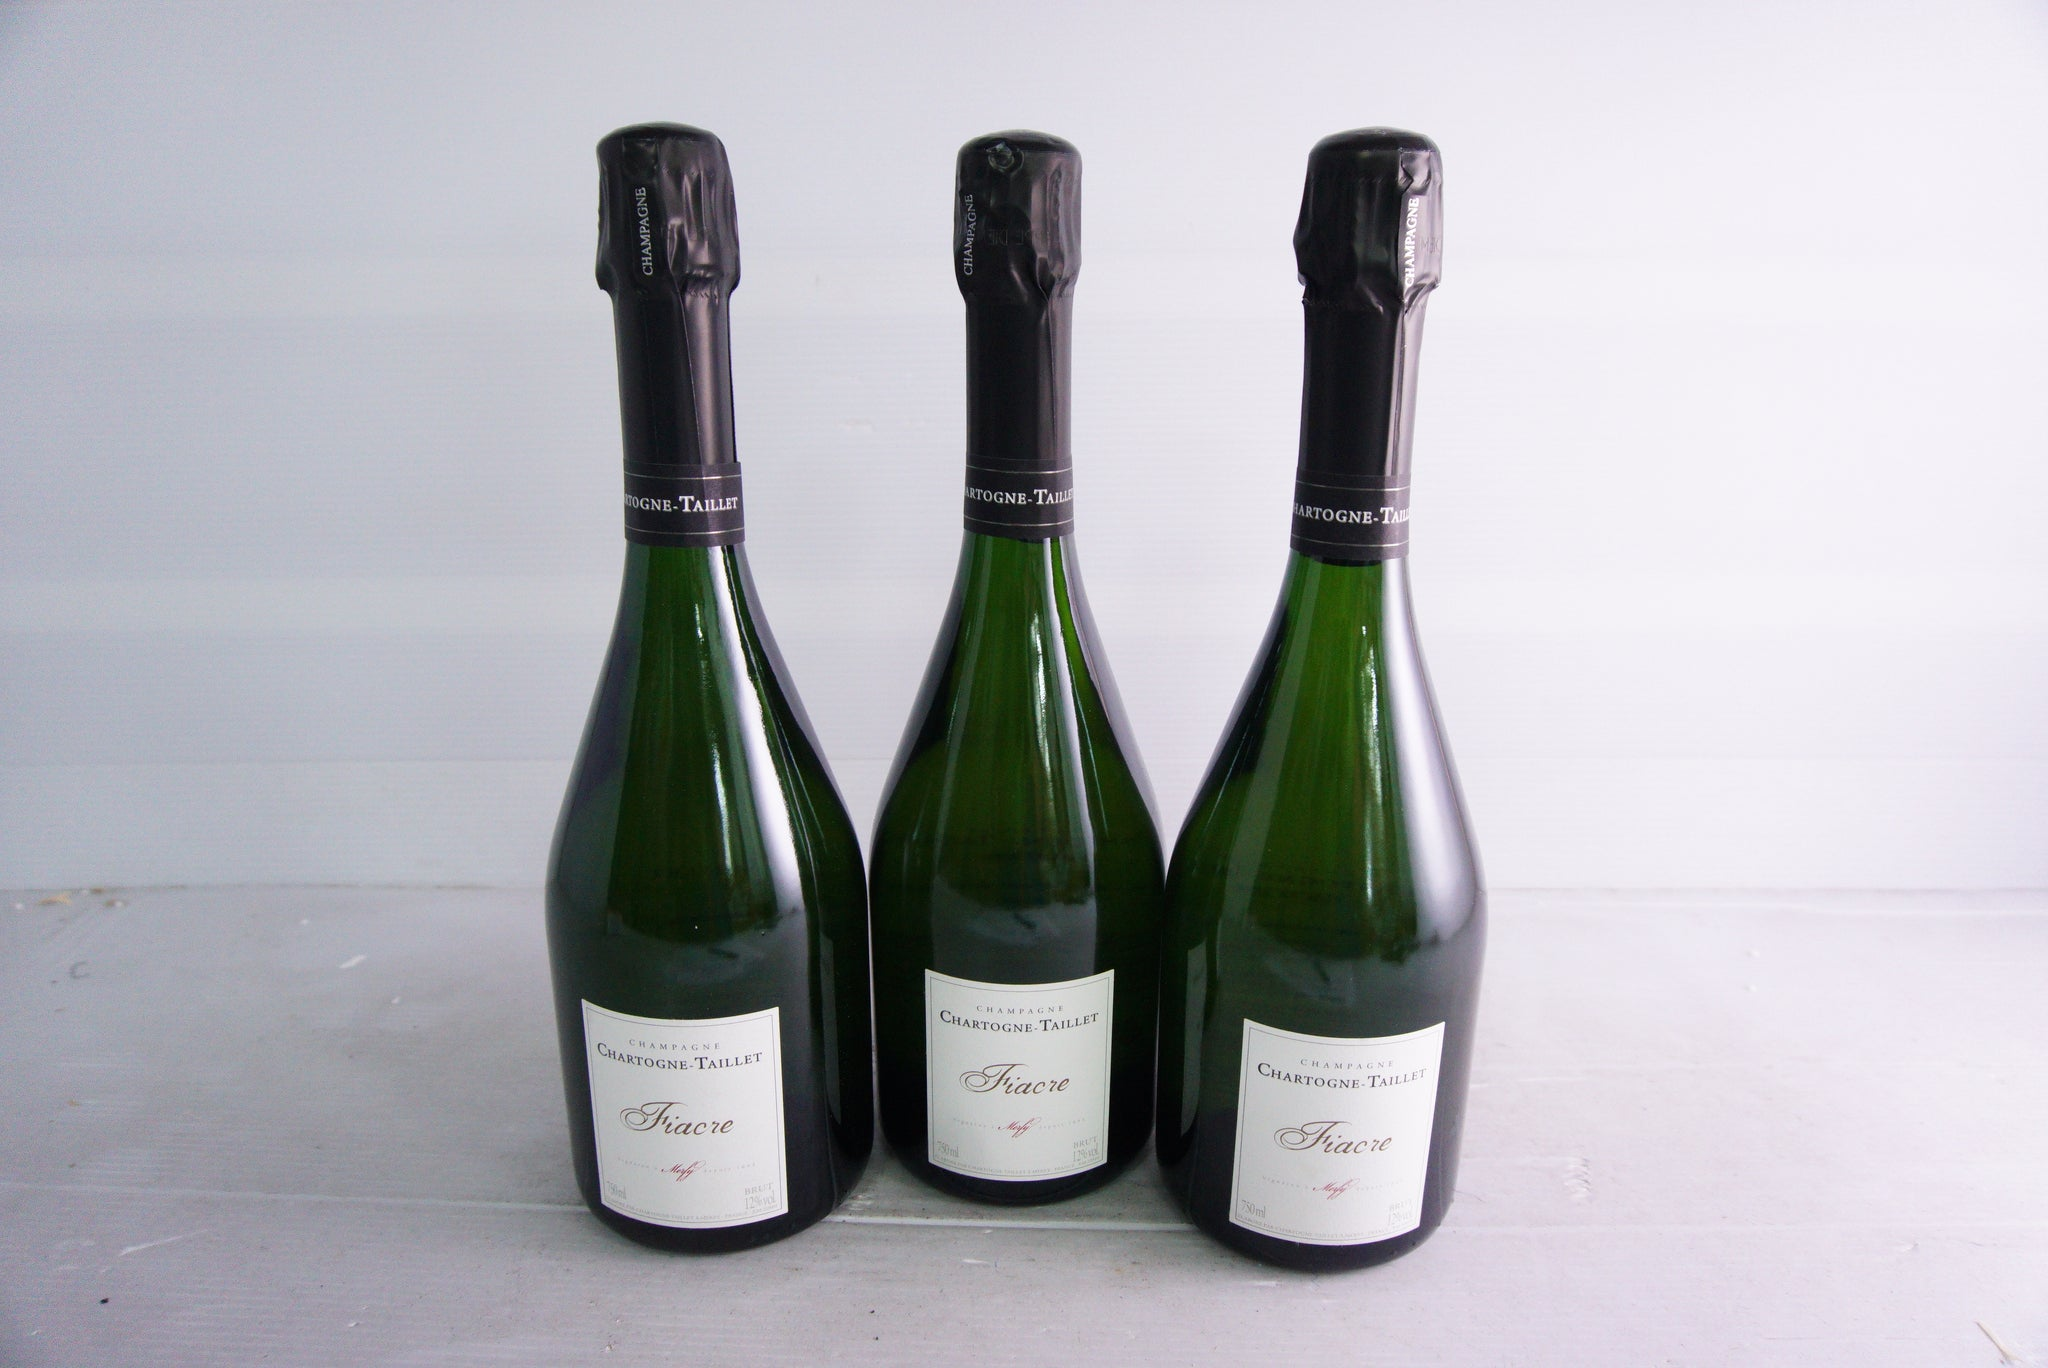 Chartogne Taillet Fiacre Brut 2010